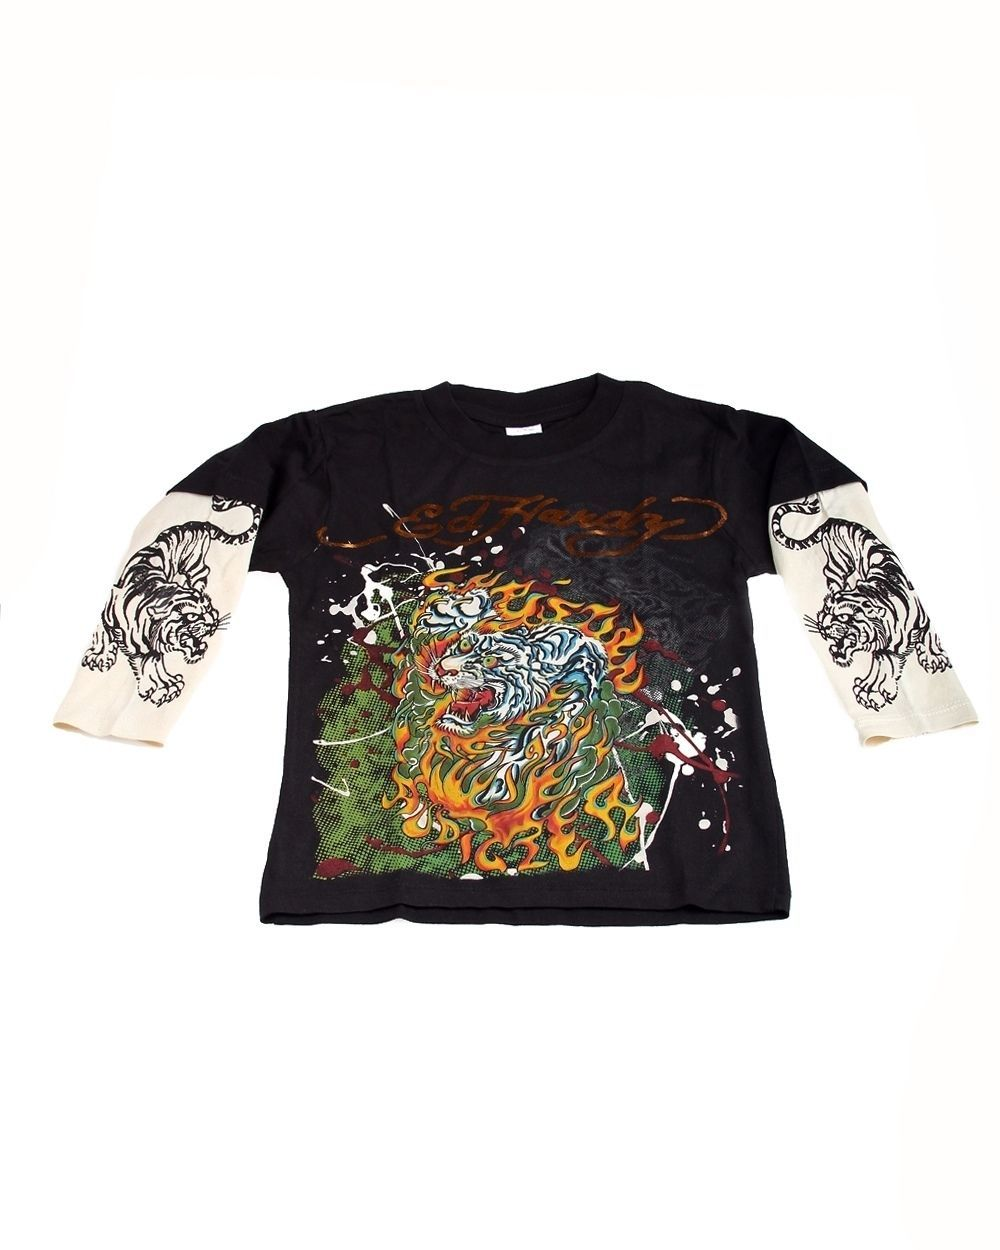 Image 0 of Popular Ed Hardy Boys Black Tee Shirt with White Tiger Motif, Double Long Sleeve